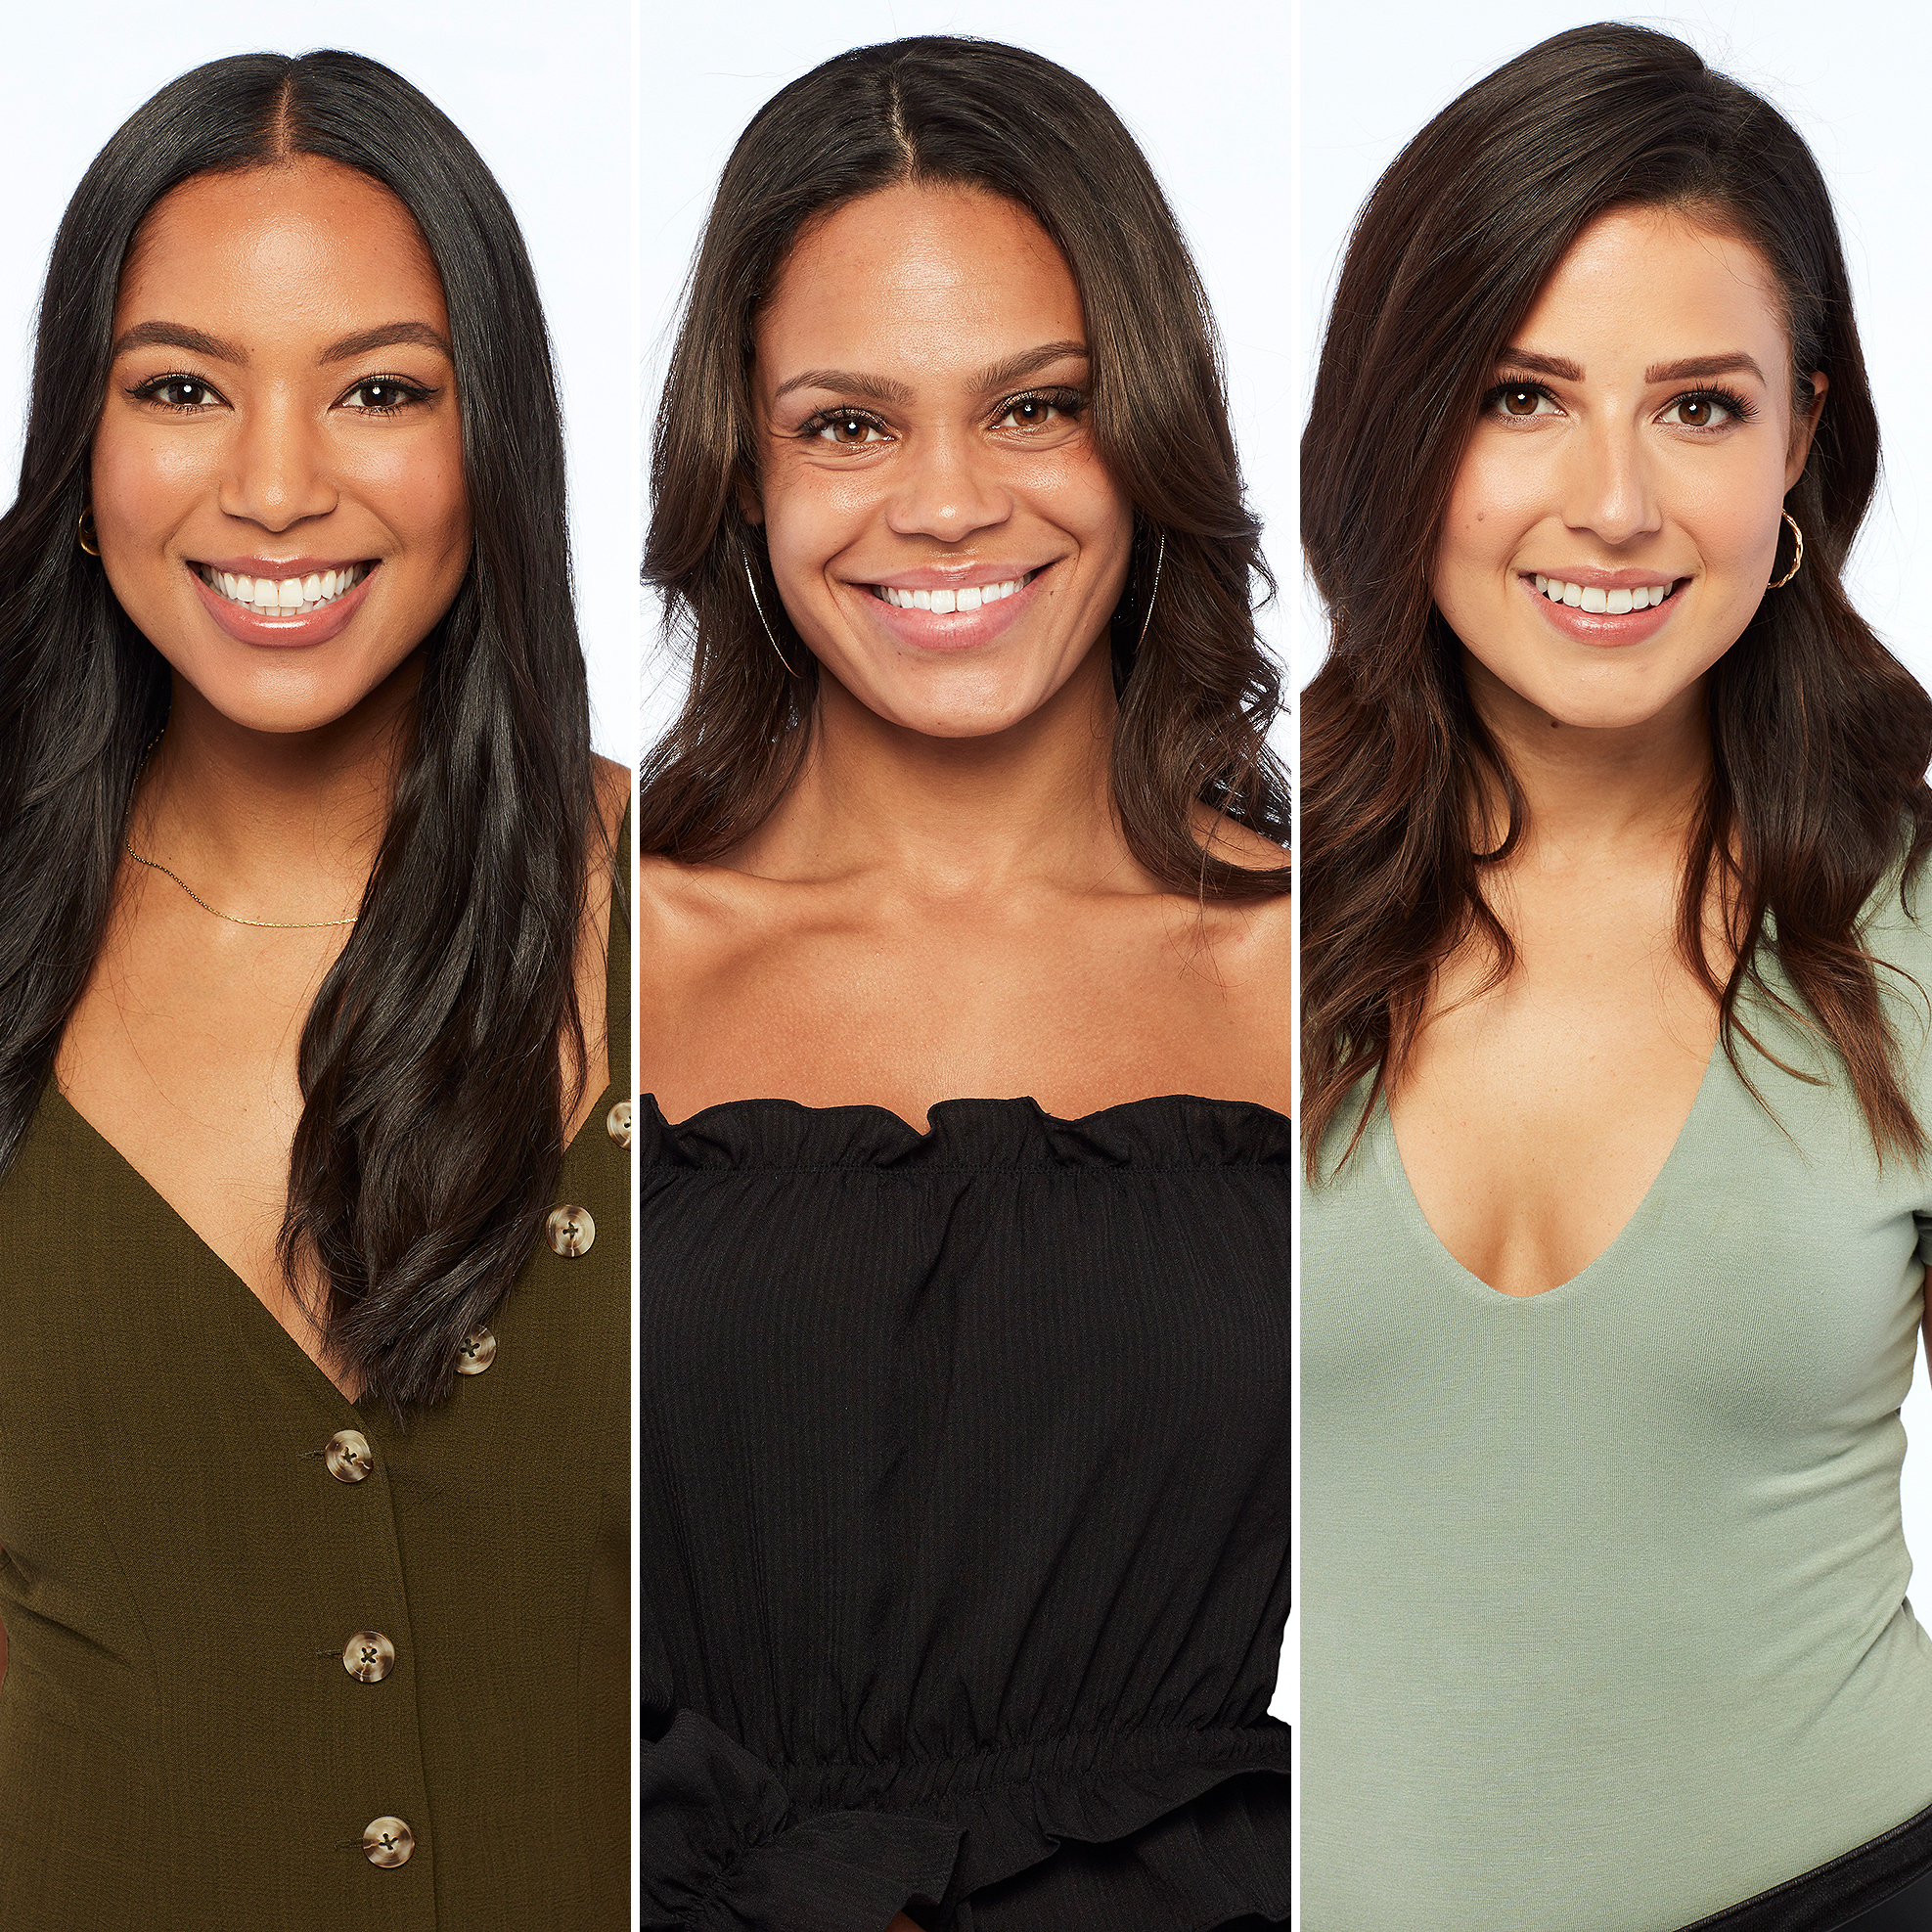 Bri Springs Reacts to Michelle Young and Katie Thurston Landing Bachelorette Gigs Over Her